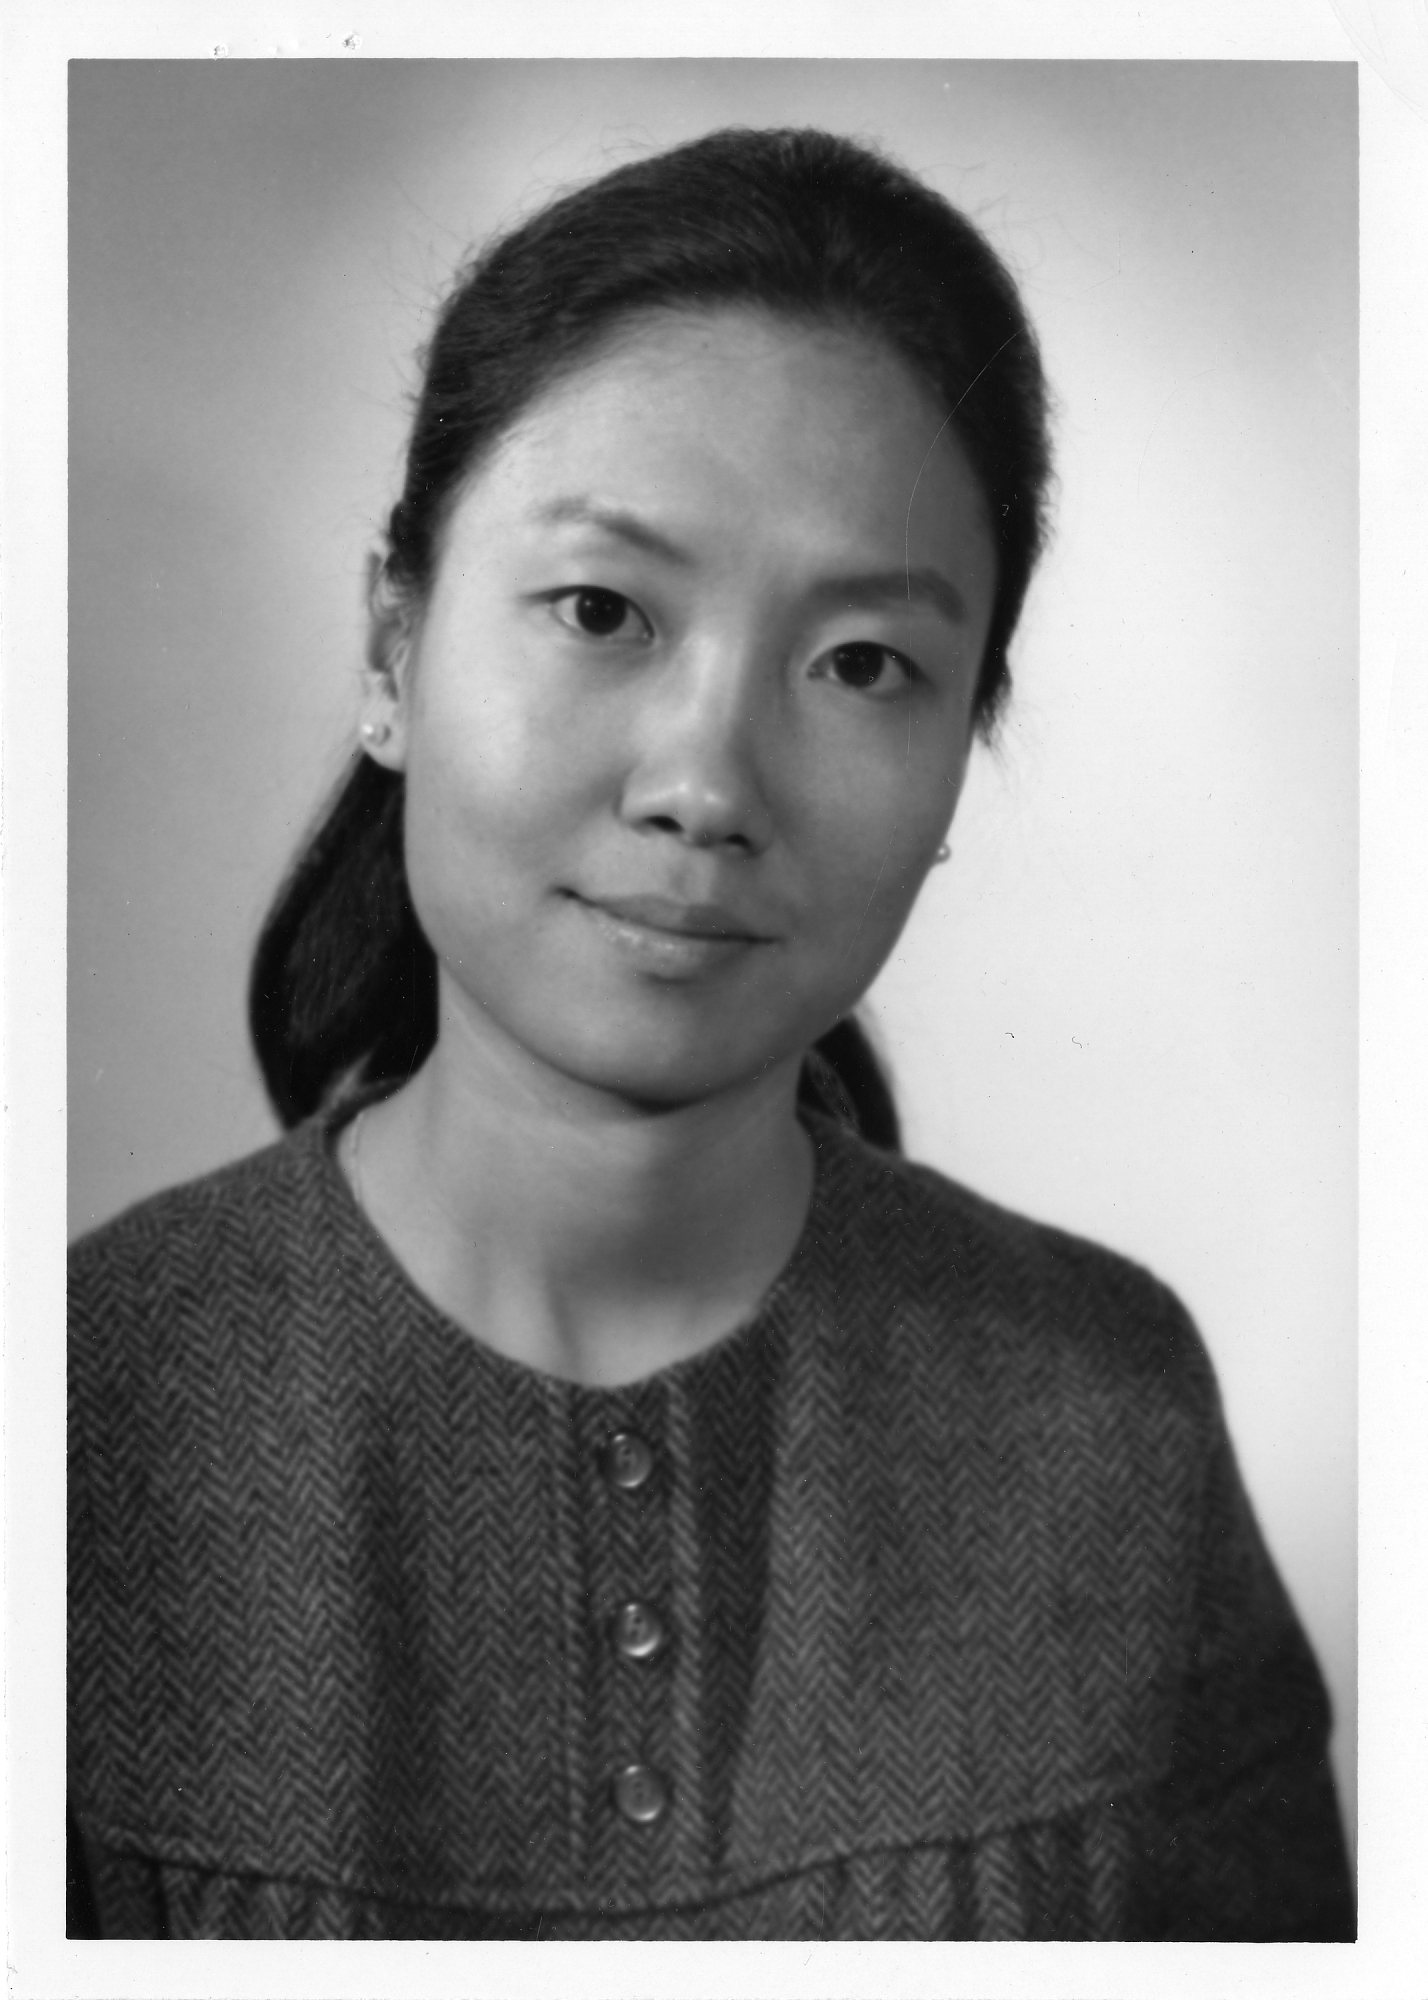 Black and white portrait of Arlene Frances Fung.